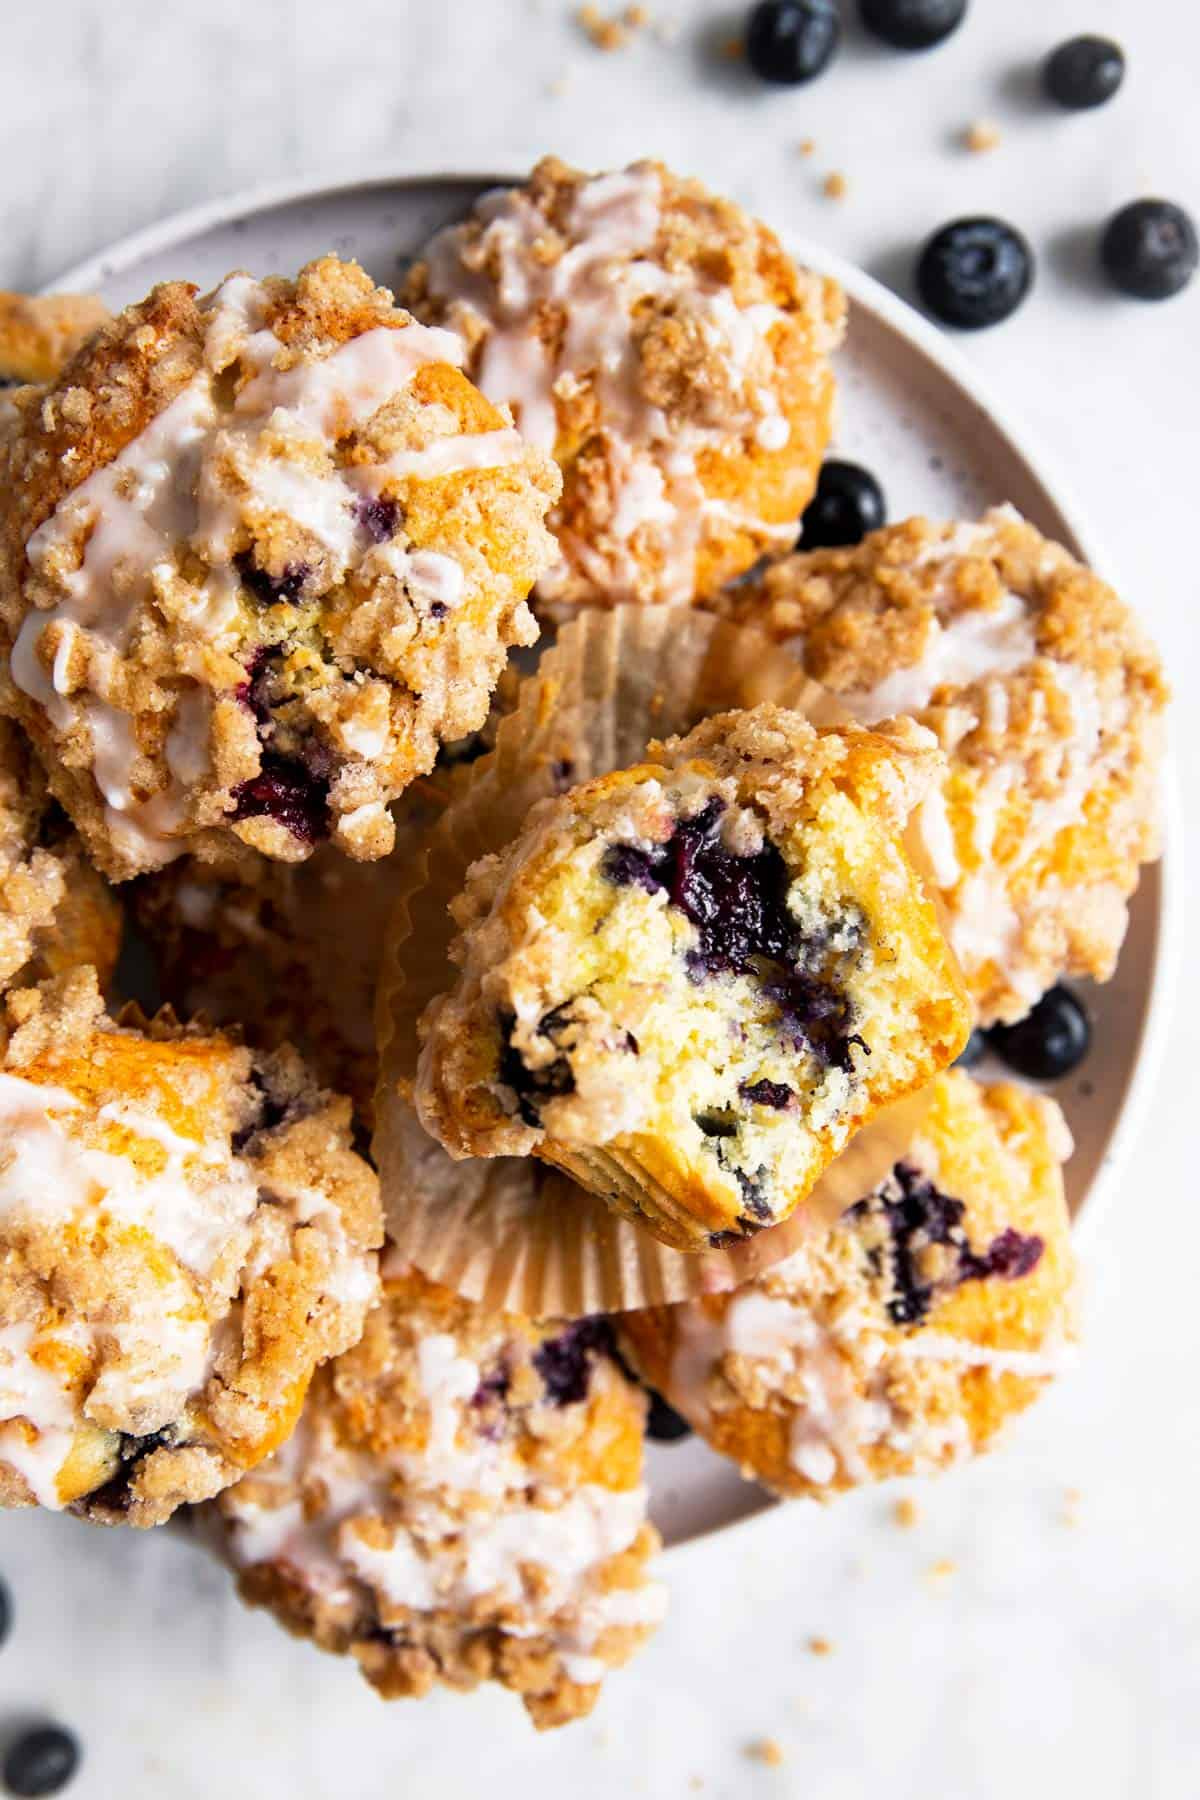 overhead view of blueberry muffins on white plate